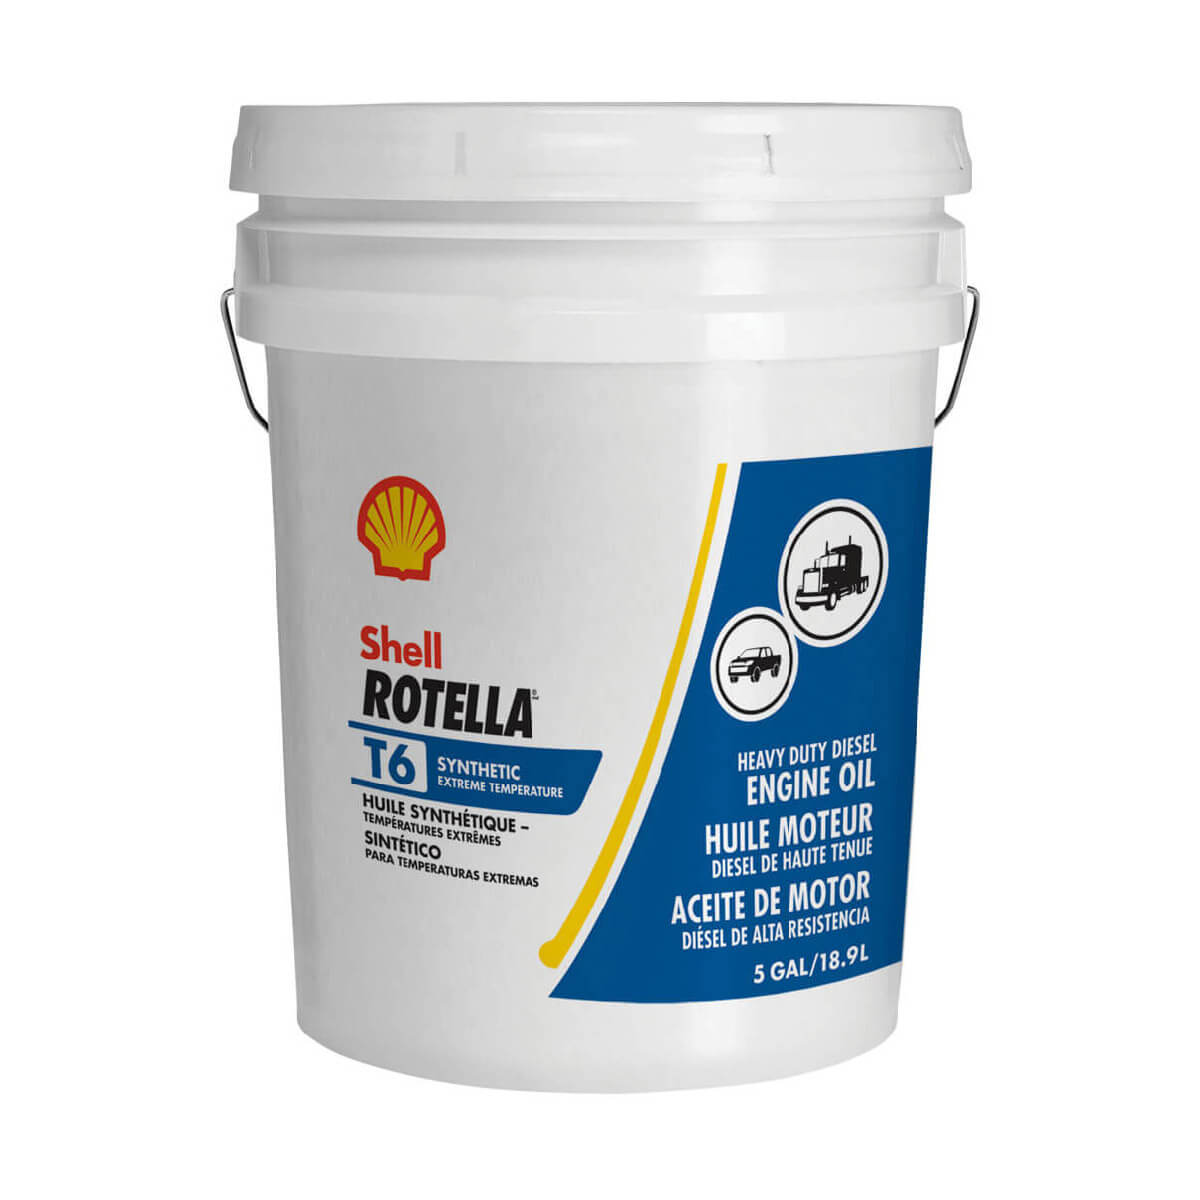 Shell Rotella T6 Triple Protection Synthetic 5W-40 - 18.9L